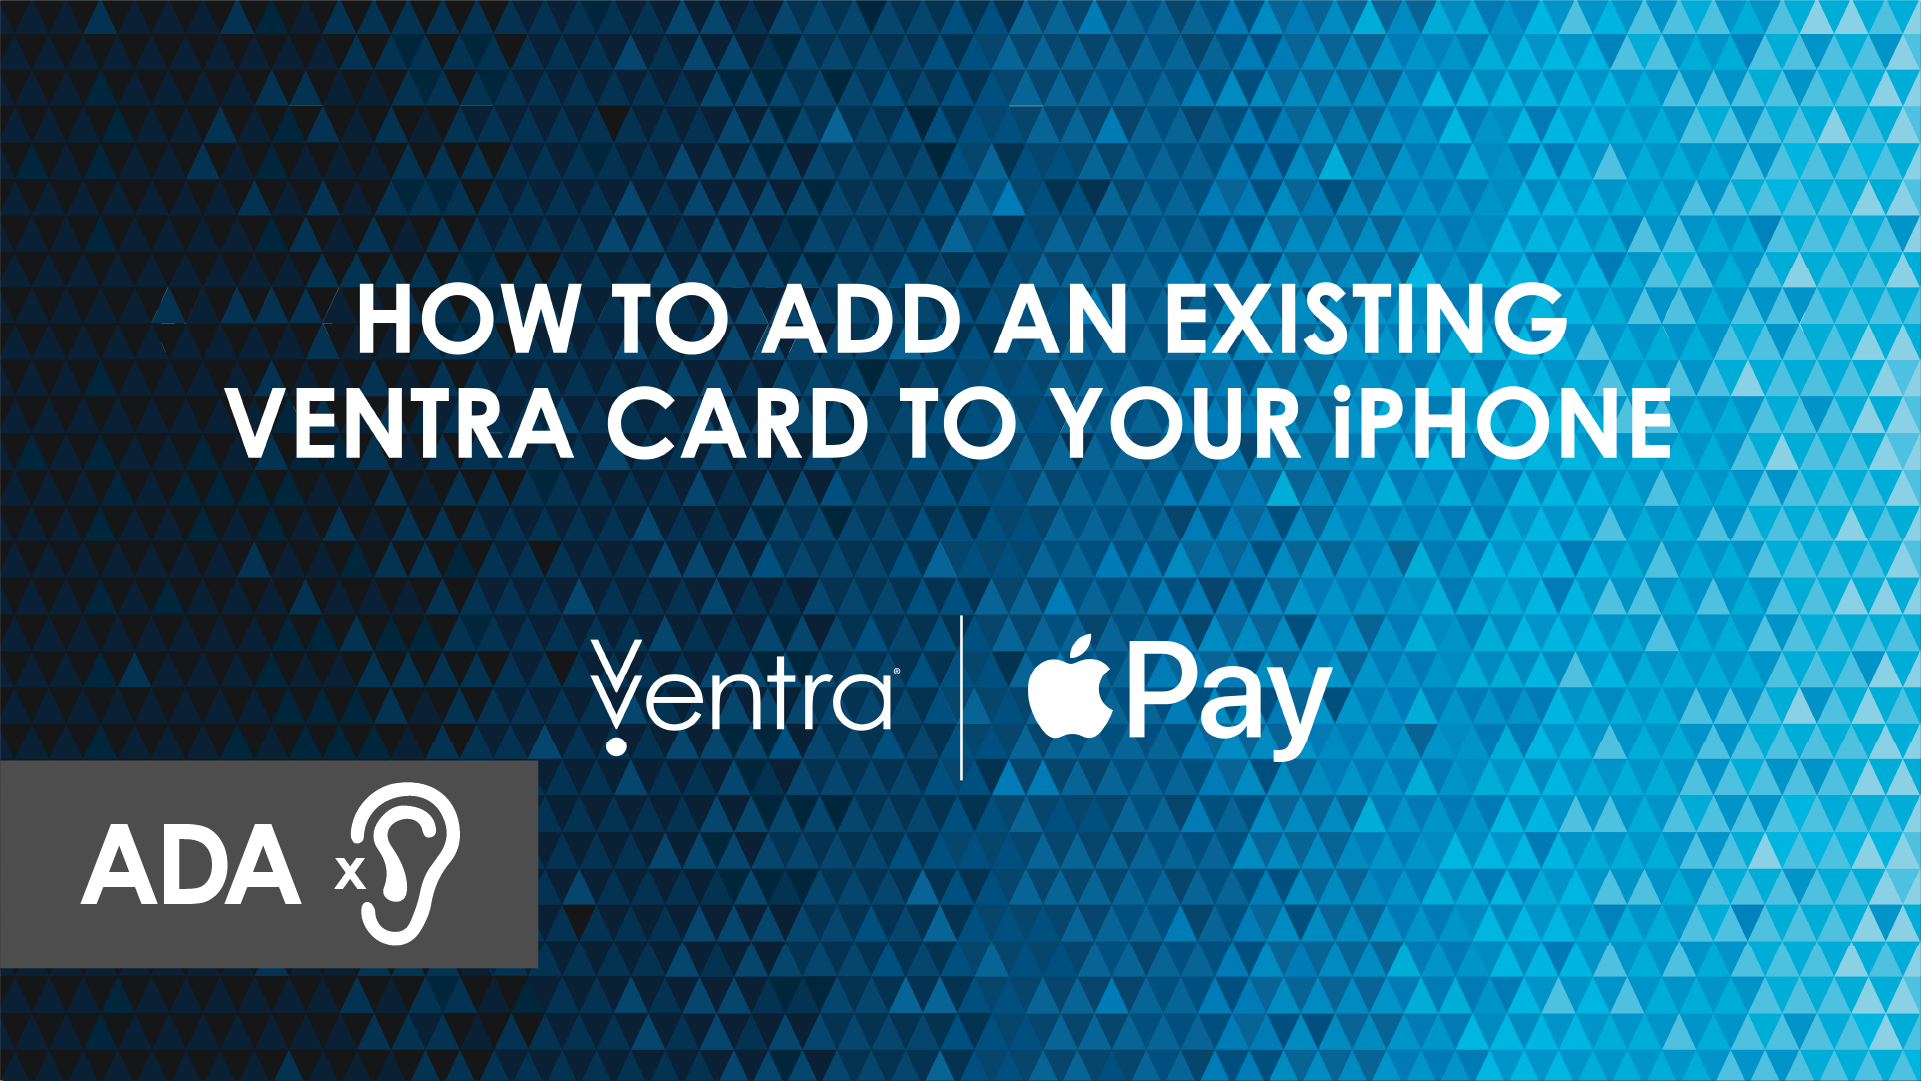 How to add an existing Ventra Card to your iPhone